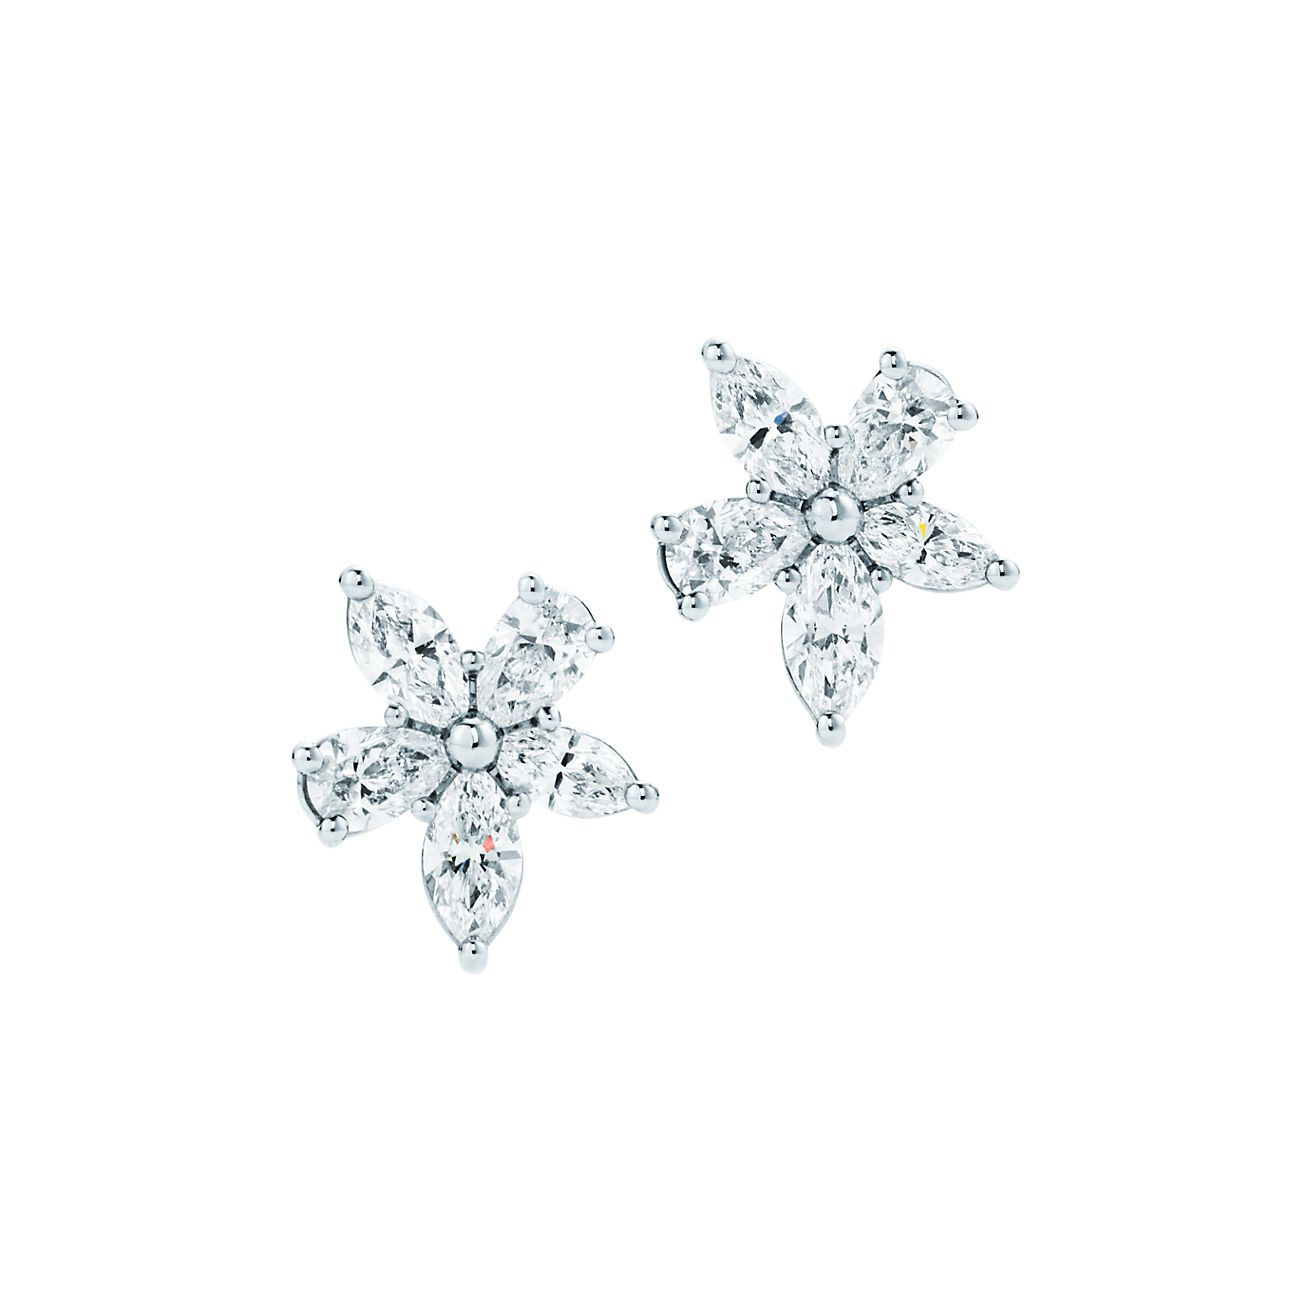 d49557994 Tiffany Victoria Earrings Review - The Best Produck Of Earring